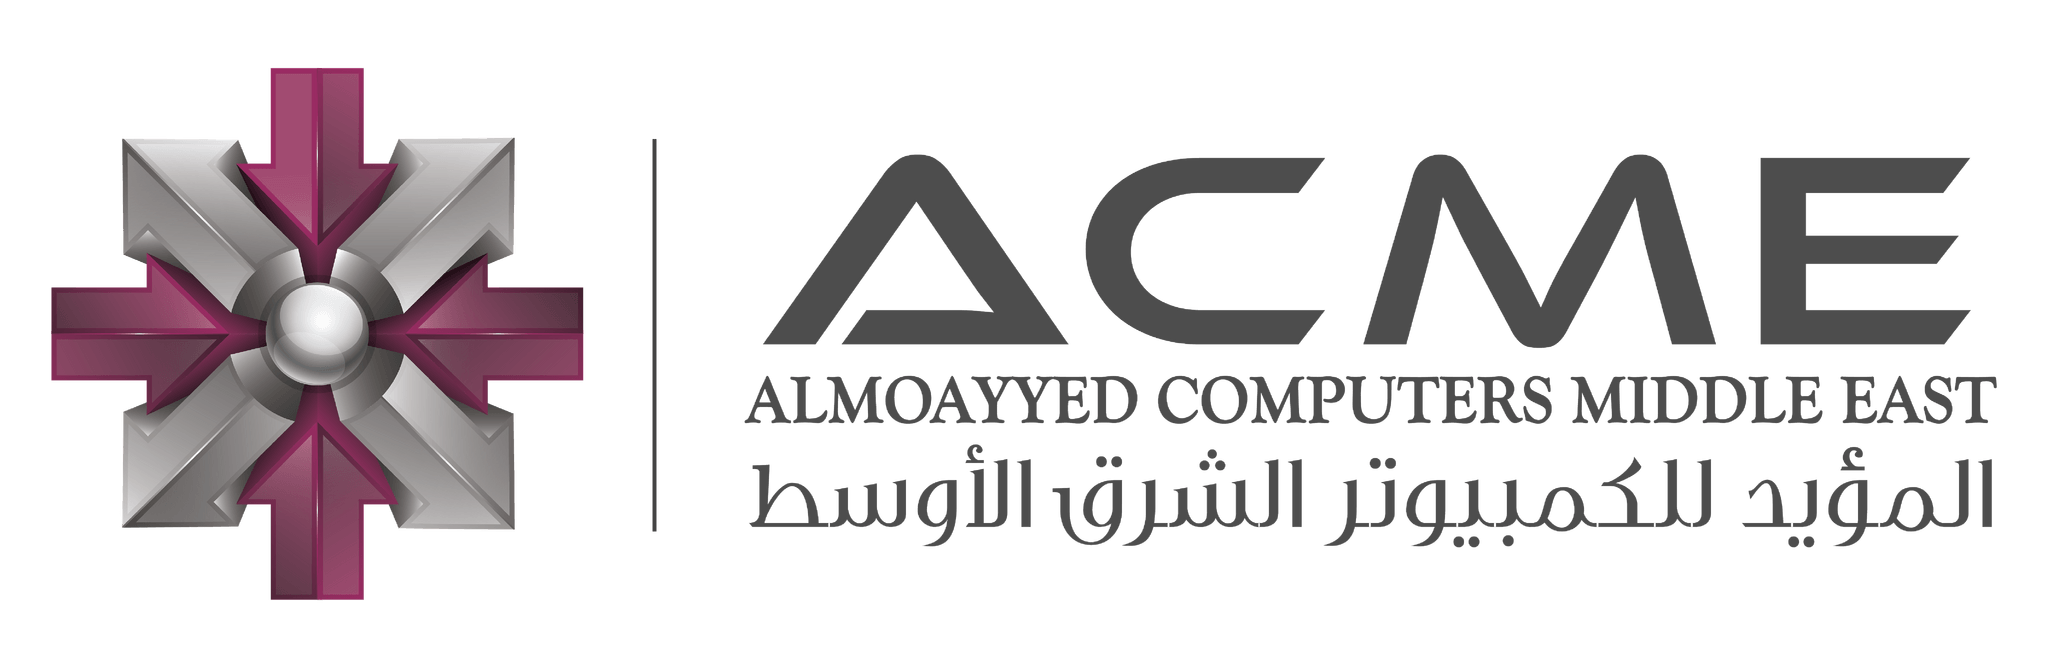 Almoayyed Computers Middle East